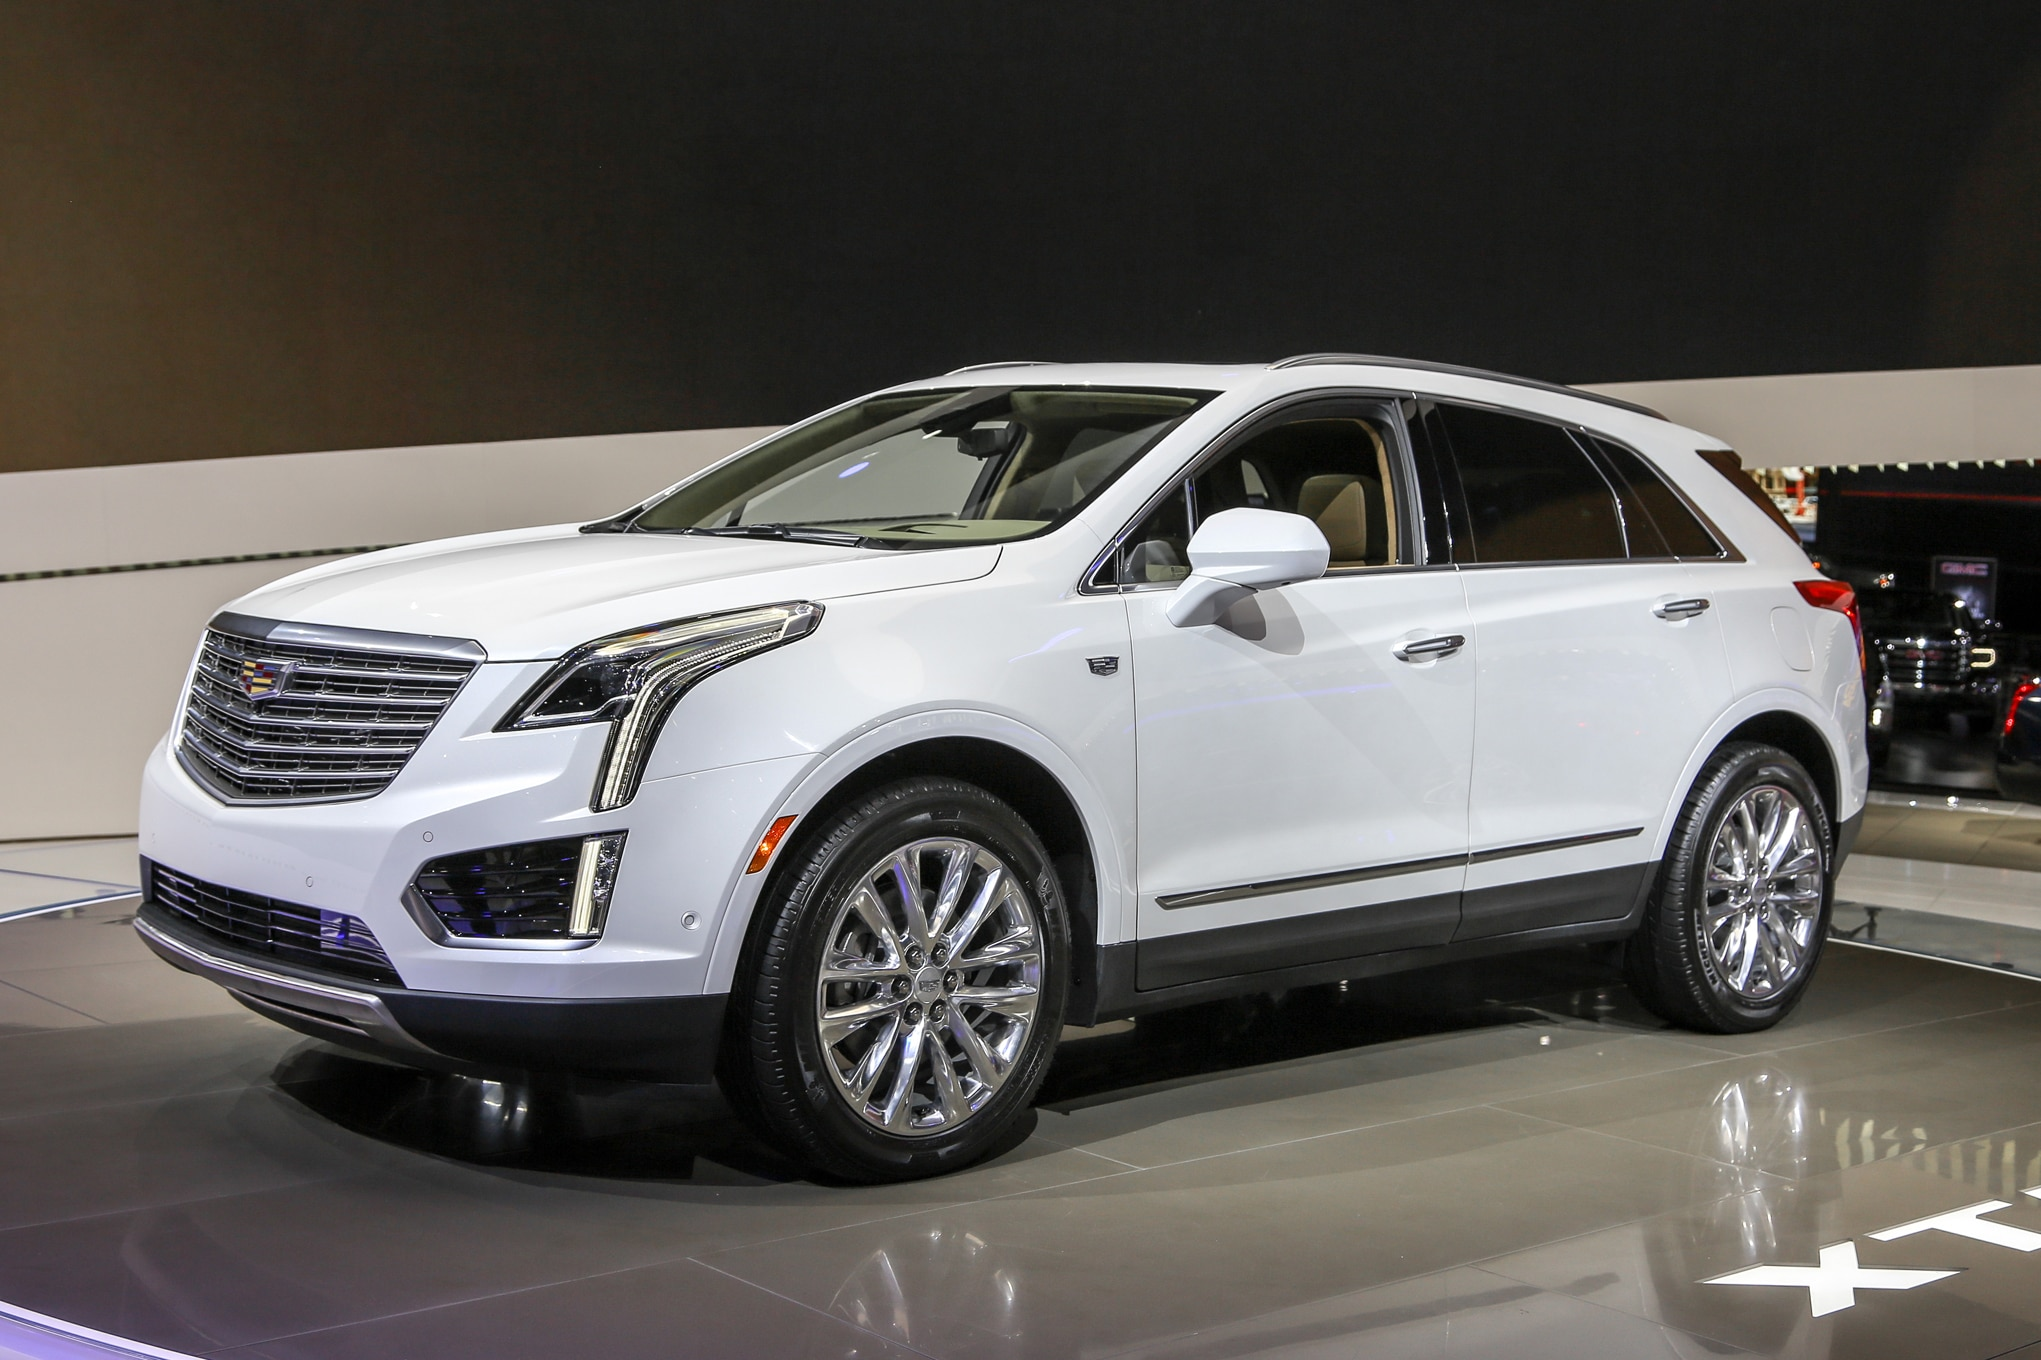 2017 Cadillac XT5 Is a Lighter, More Spacious Crossover